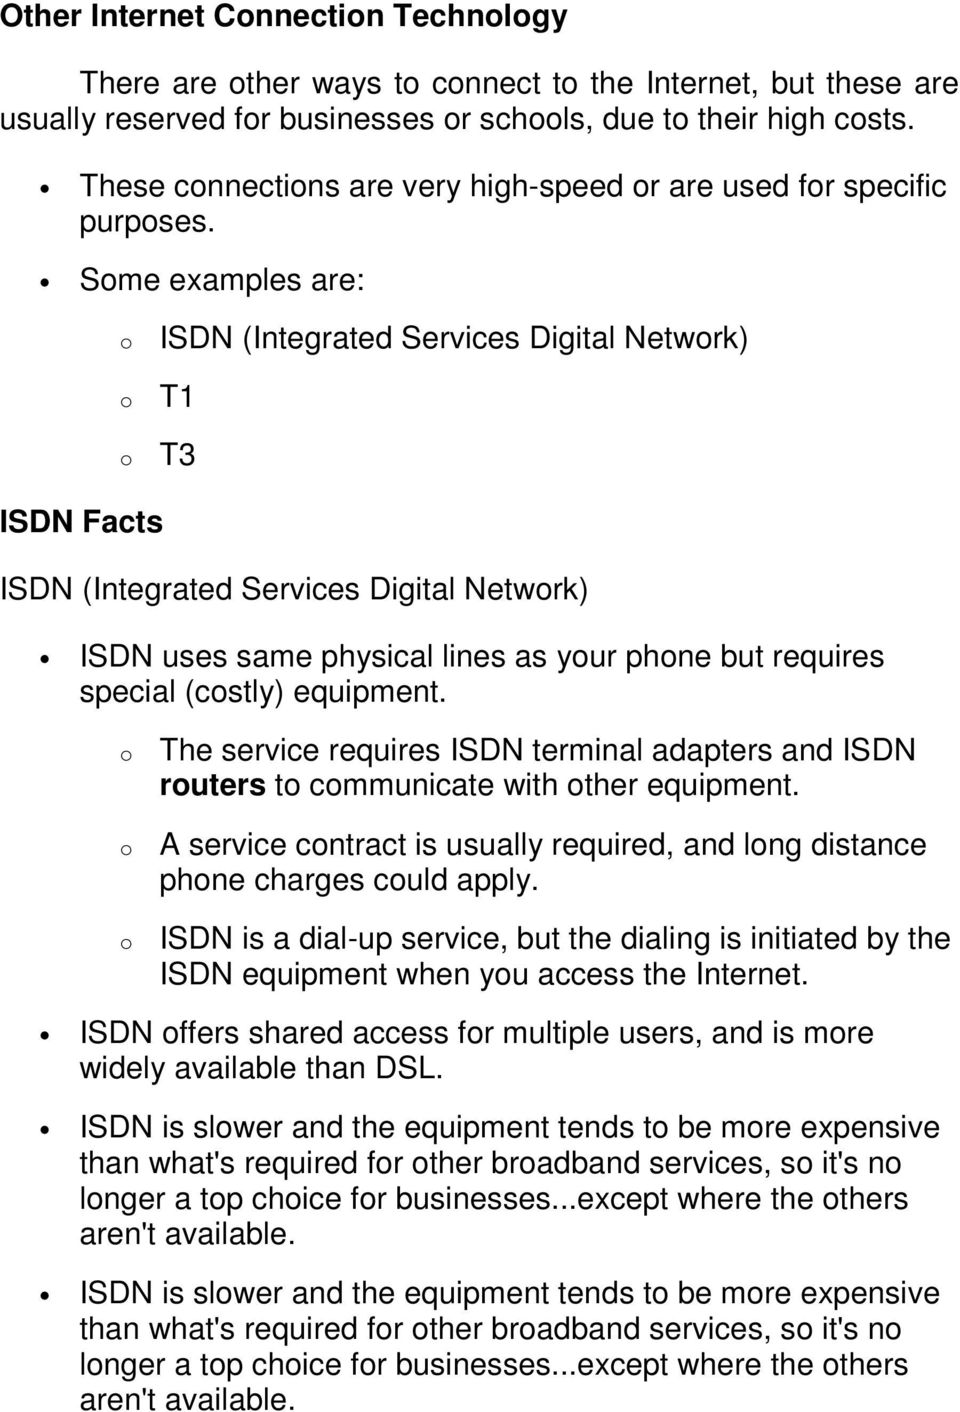 Sme examples are: ISDN (Integrated Services Digital Netwrk) T1 T3 ISDN Facts ISDN (Integrated Services Digital Netwrk) ISDN uses same physical lines as yur phne but requires special (cstly) equipment.